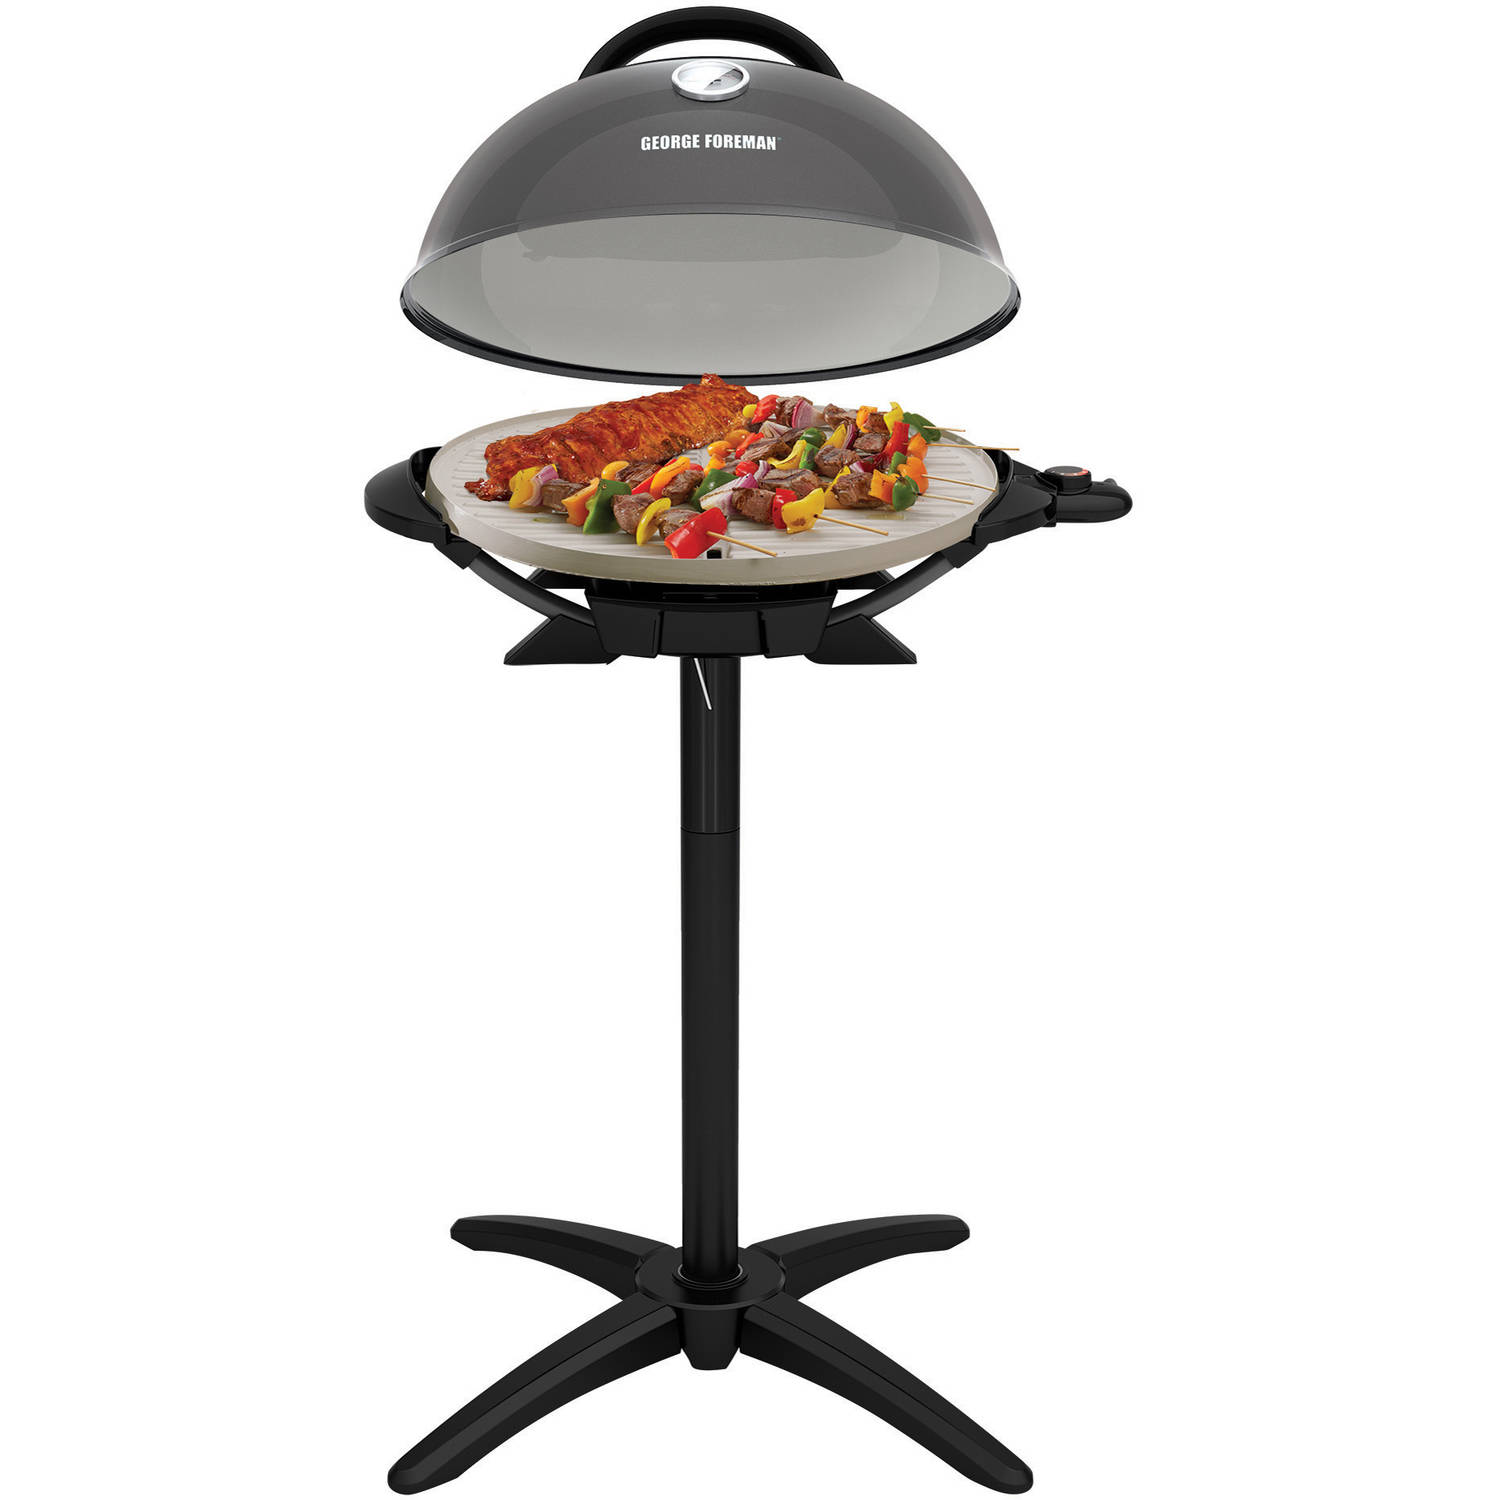 GFO3320GM  sc 1 st  eBay & George Foreman PRO Indoor / Outdoor Grill  240 Sq In Ceramic ...